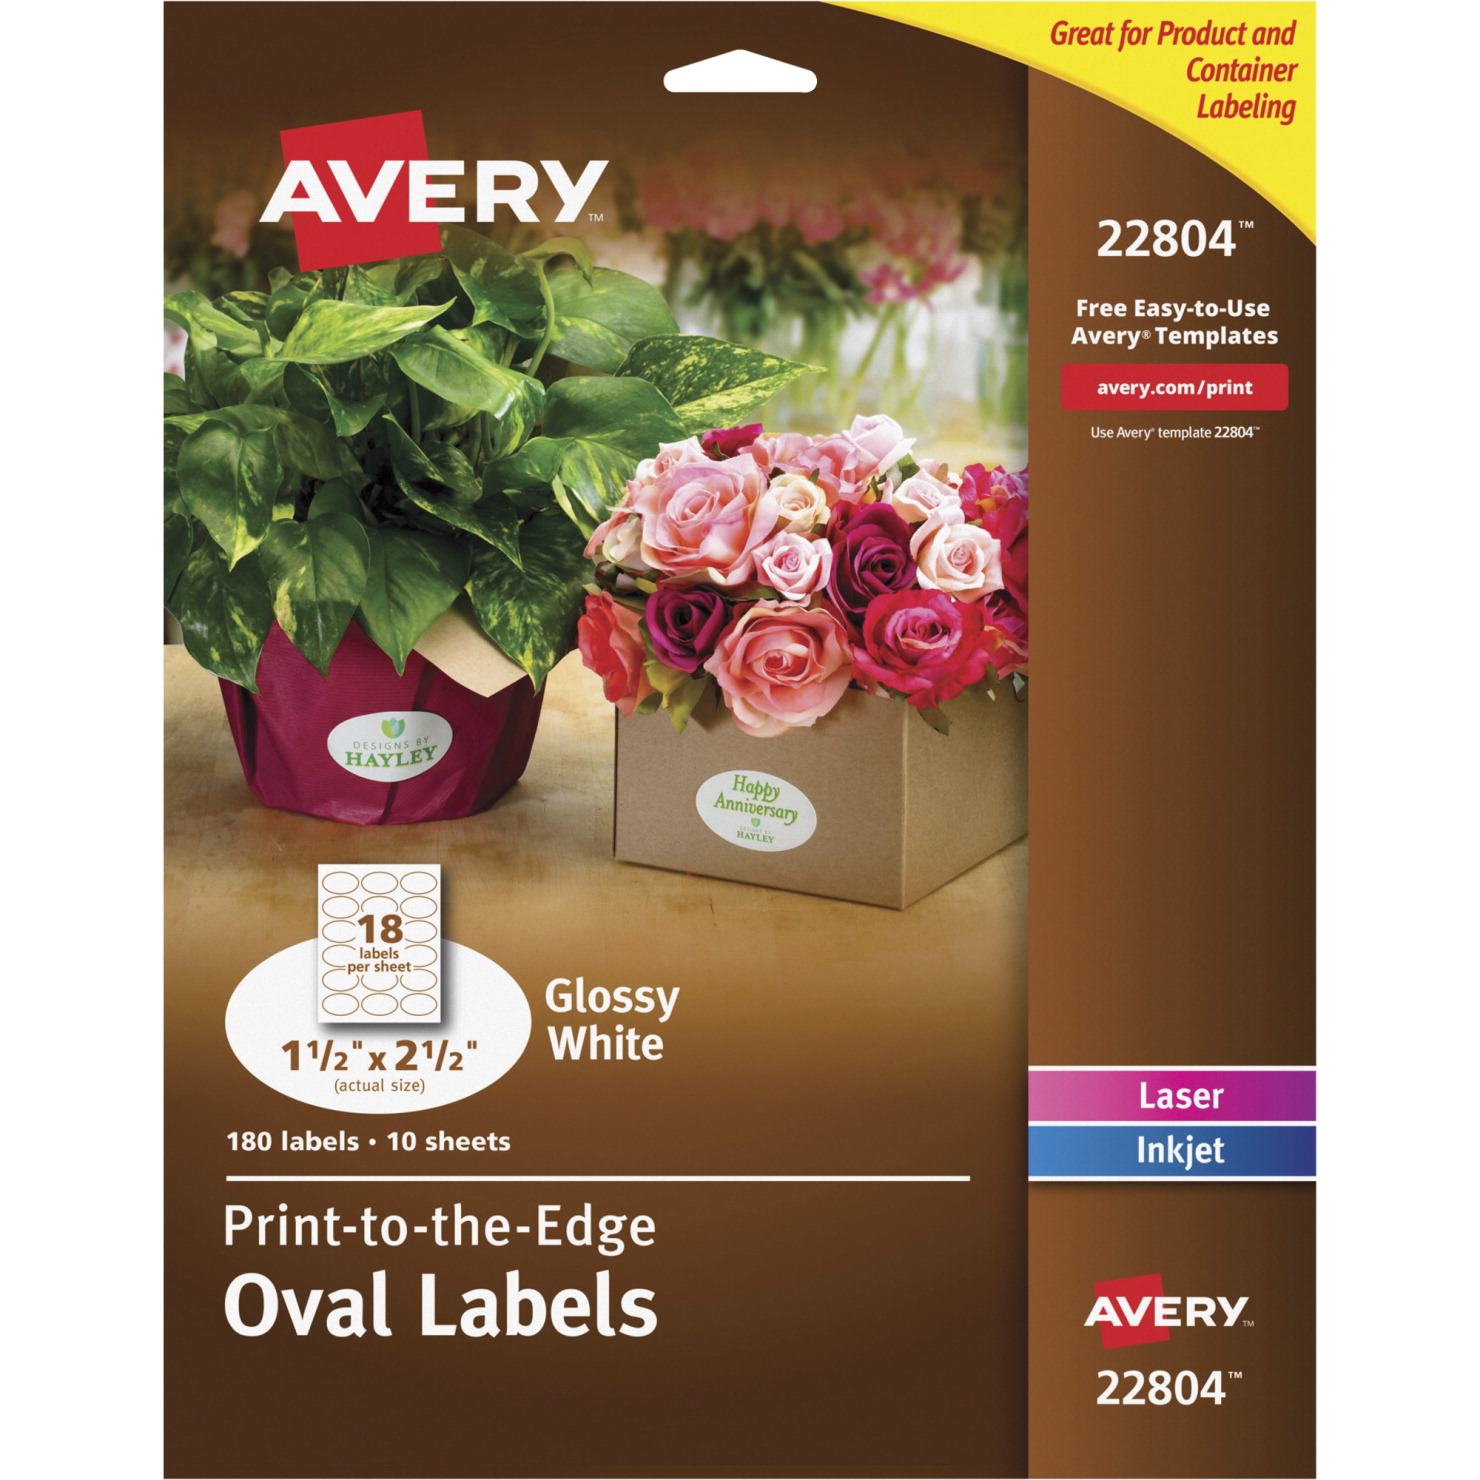 Avery Premium Easy Peel Oval Self-Adhesive Label for Laser and Inkjet  Printers, 1-1/2 X 2-1/2 in, Glossy White, Pack of 180